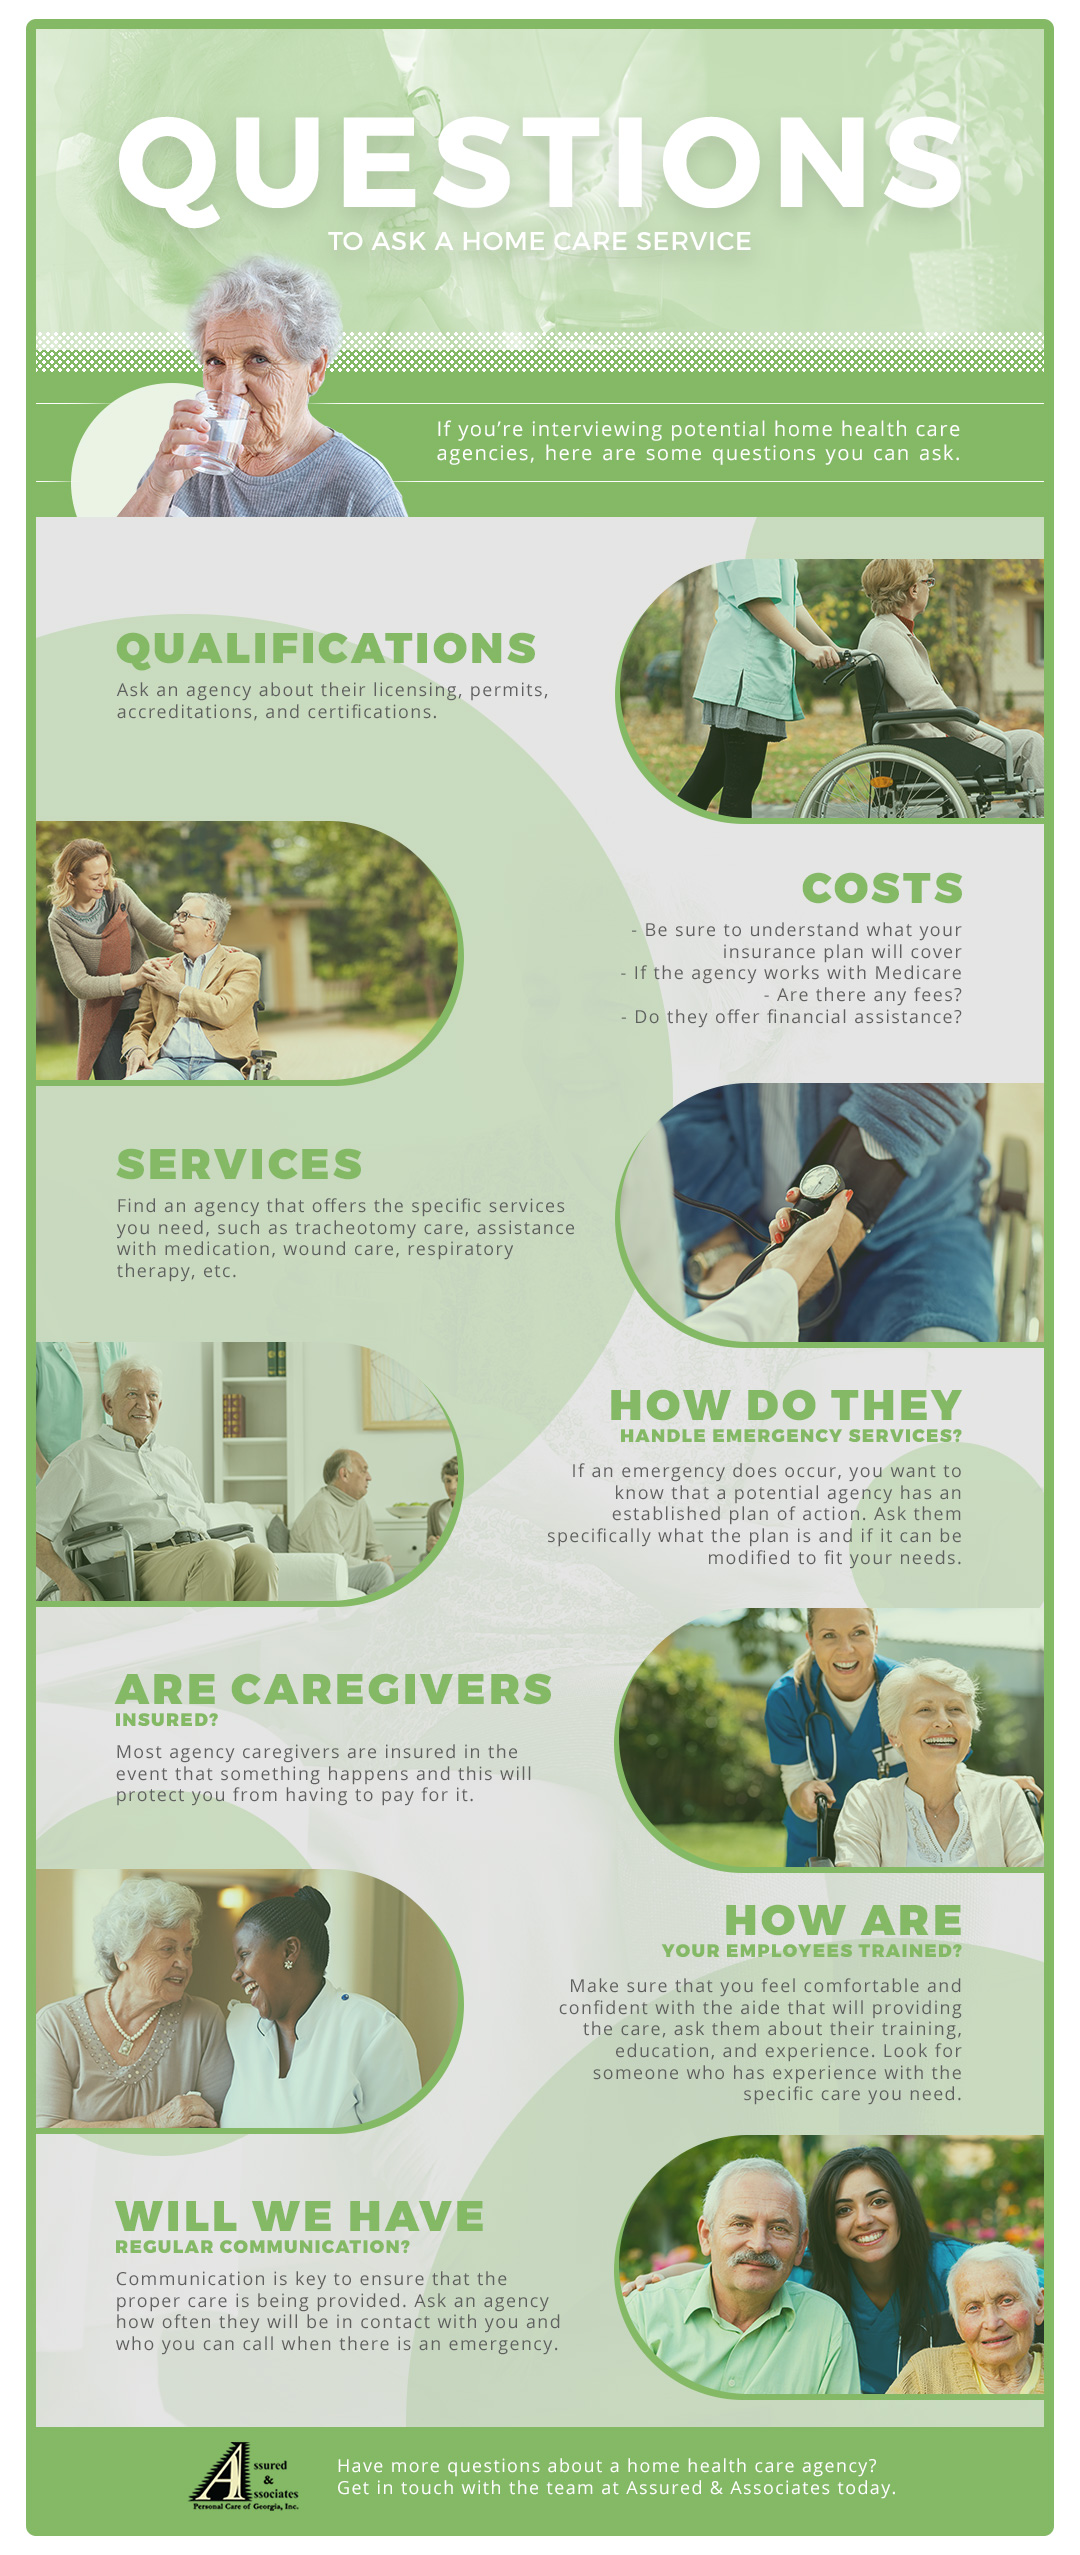 Questions to ask your home health care agency in Atlanta